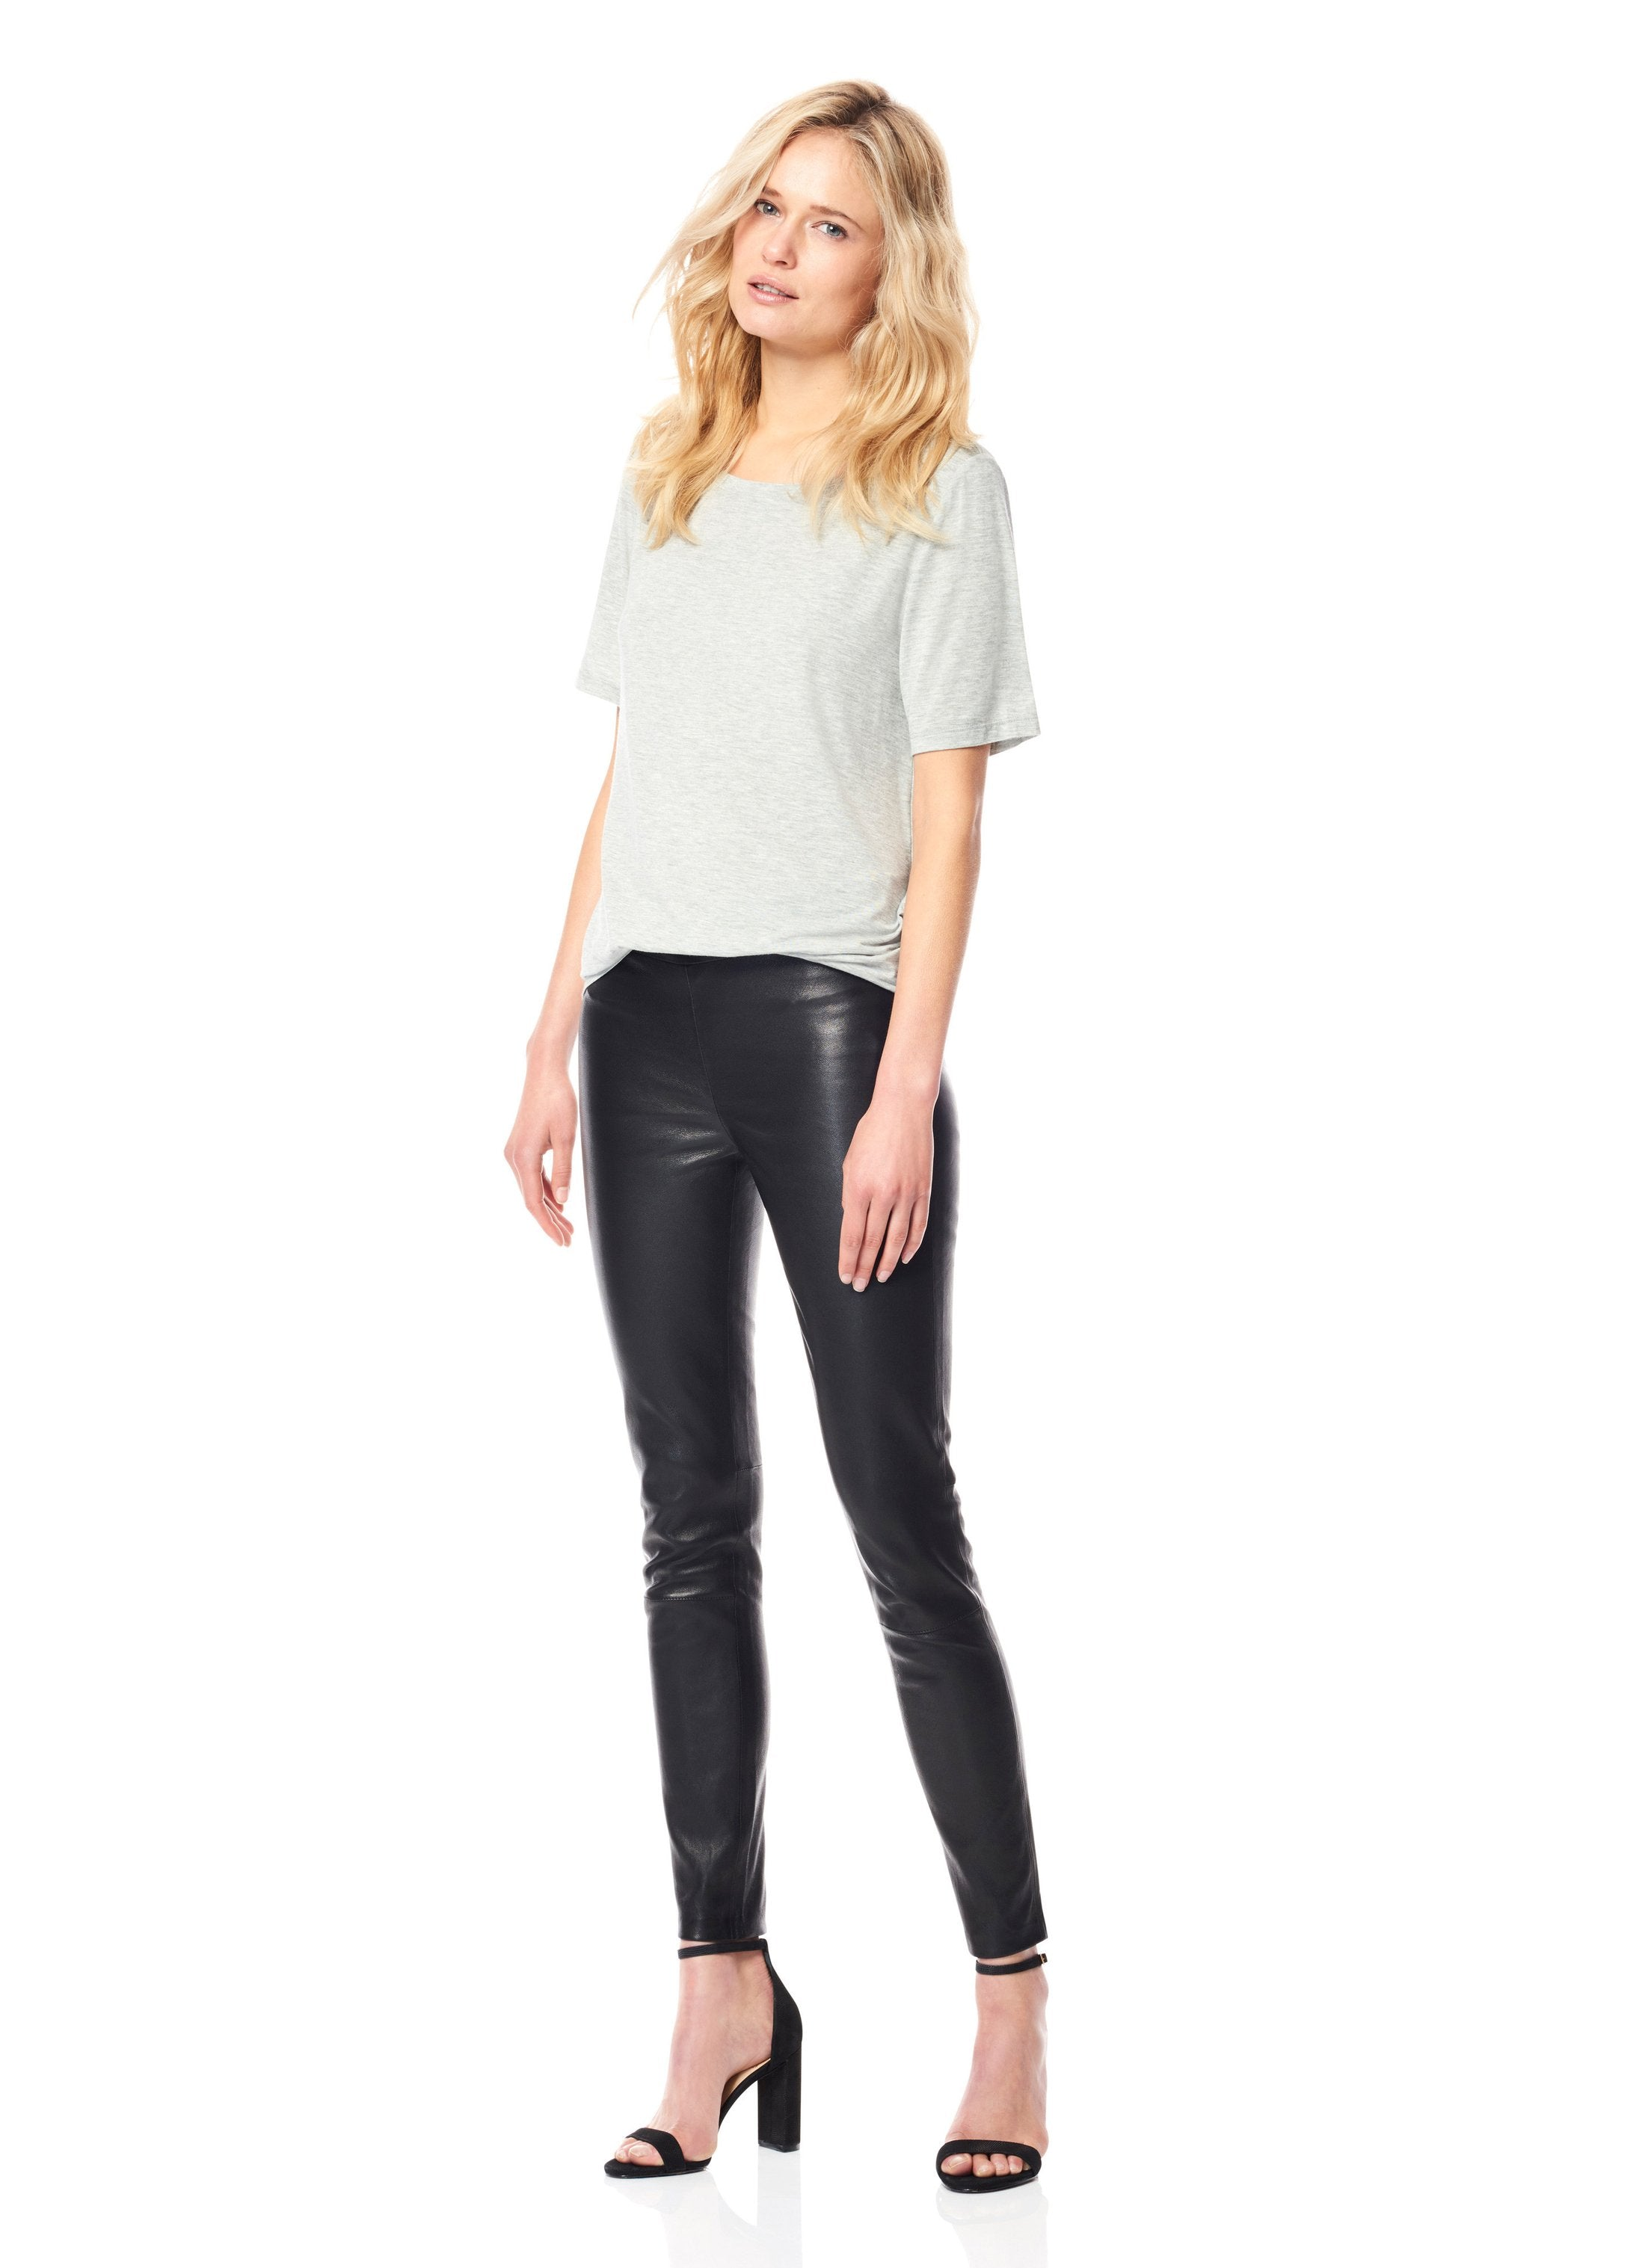 Black ECRU leather stretch legging found at PATRICIA in Southern Pines, NC